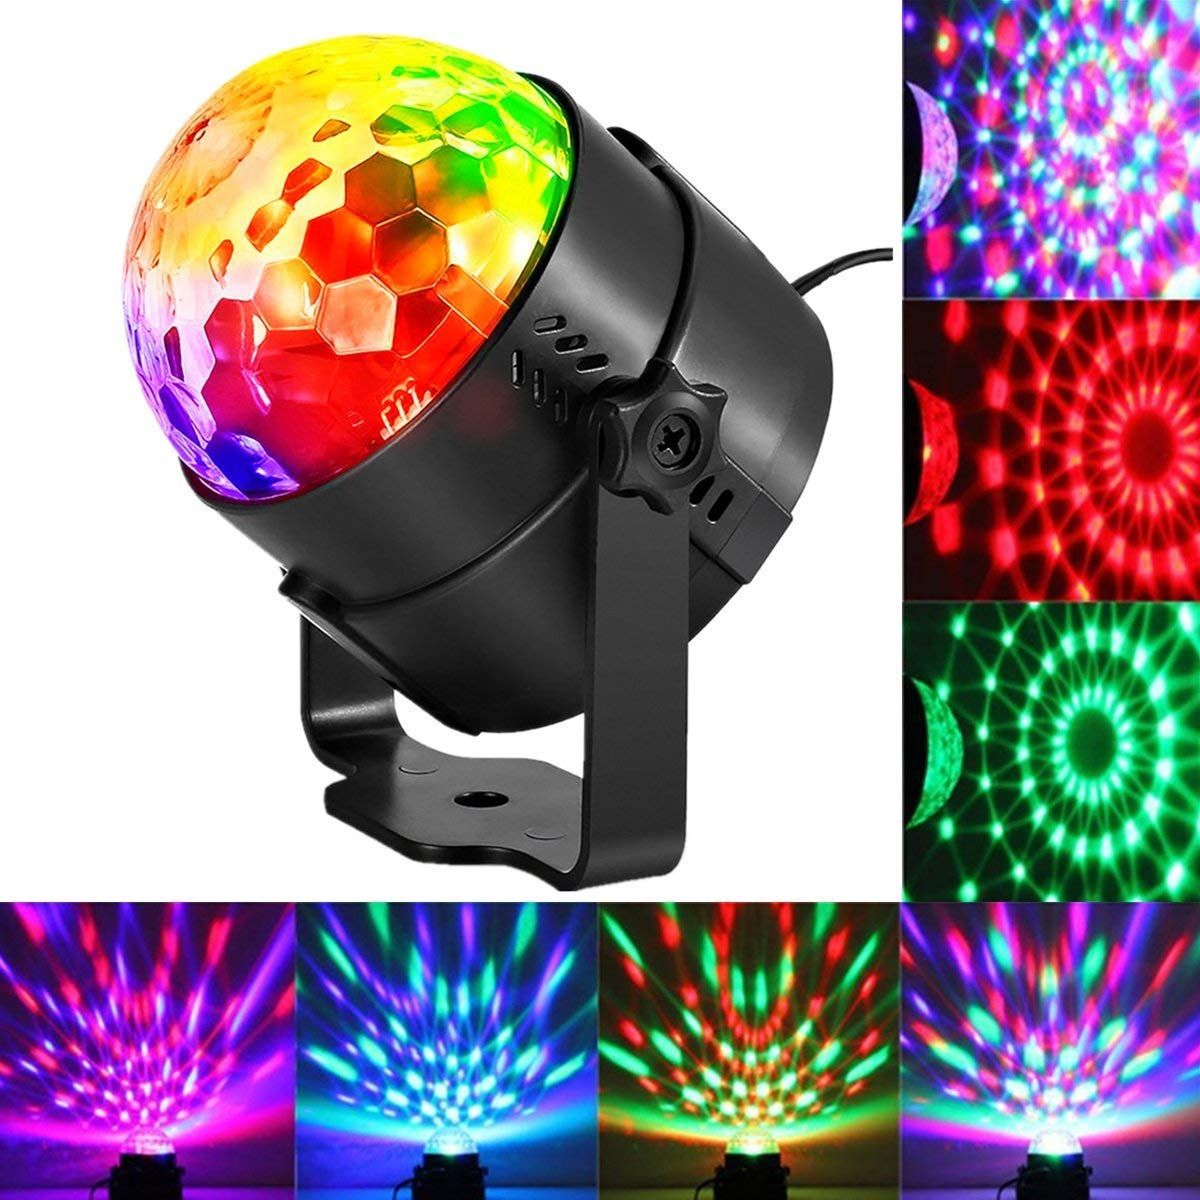 Disco Ball Spriak 2018New Disco Lights Party Lights Sound Activated Storbe Light With Remote Control DJ Lighting,Led Dance light show for Home Room Parties Kids Birthday Wedding Show Club Pub